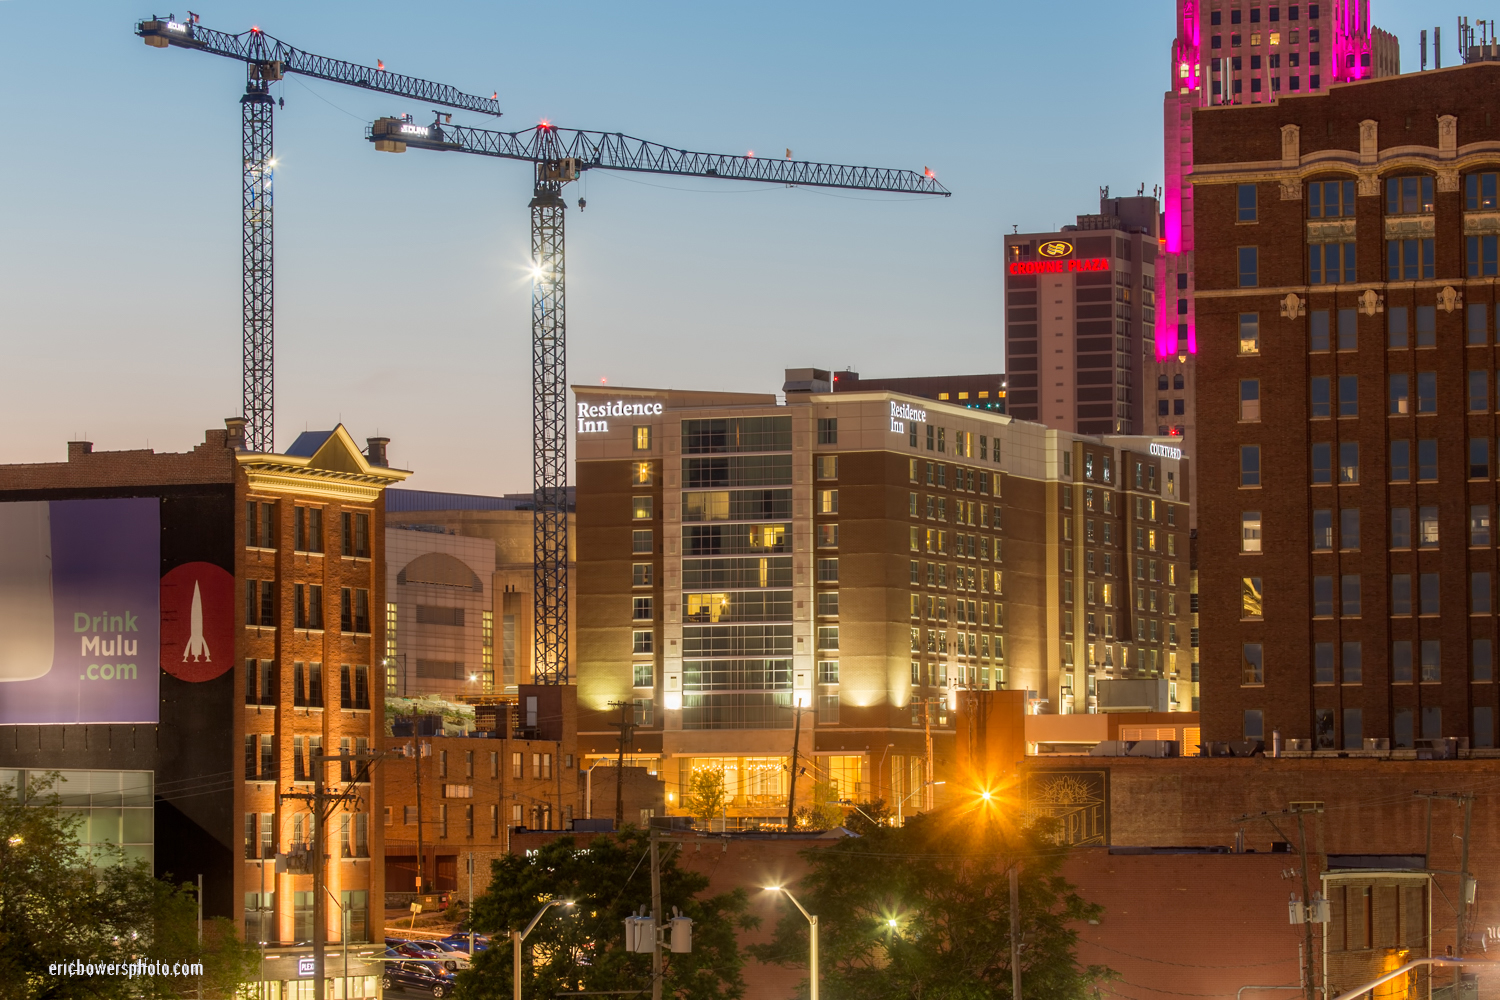 Construction Cranes at Downtown Kansas City Hotel Site